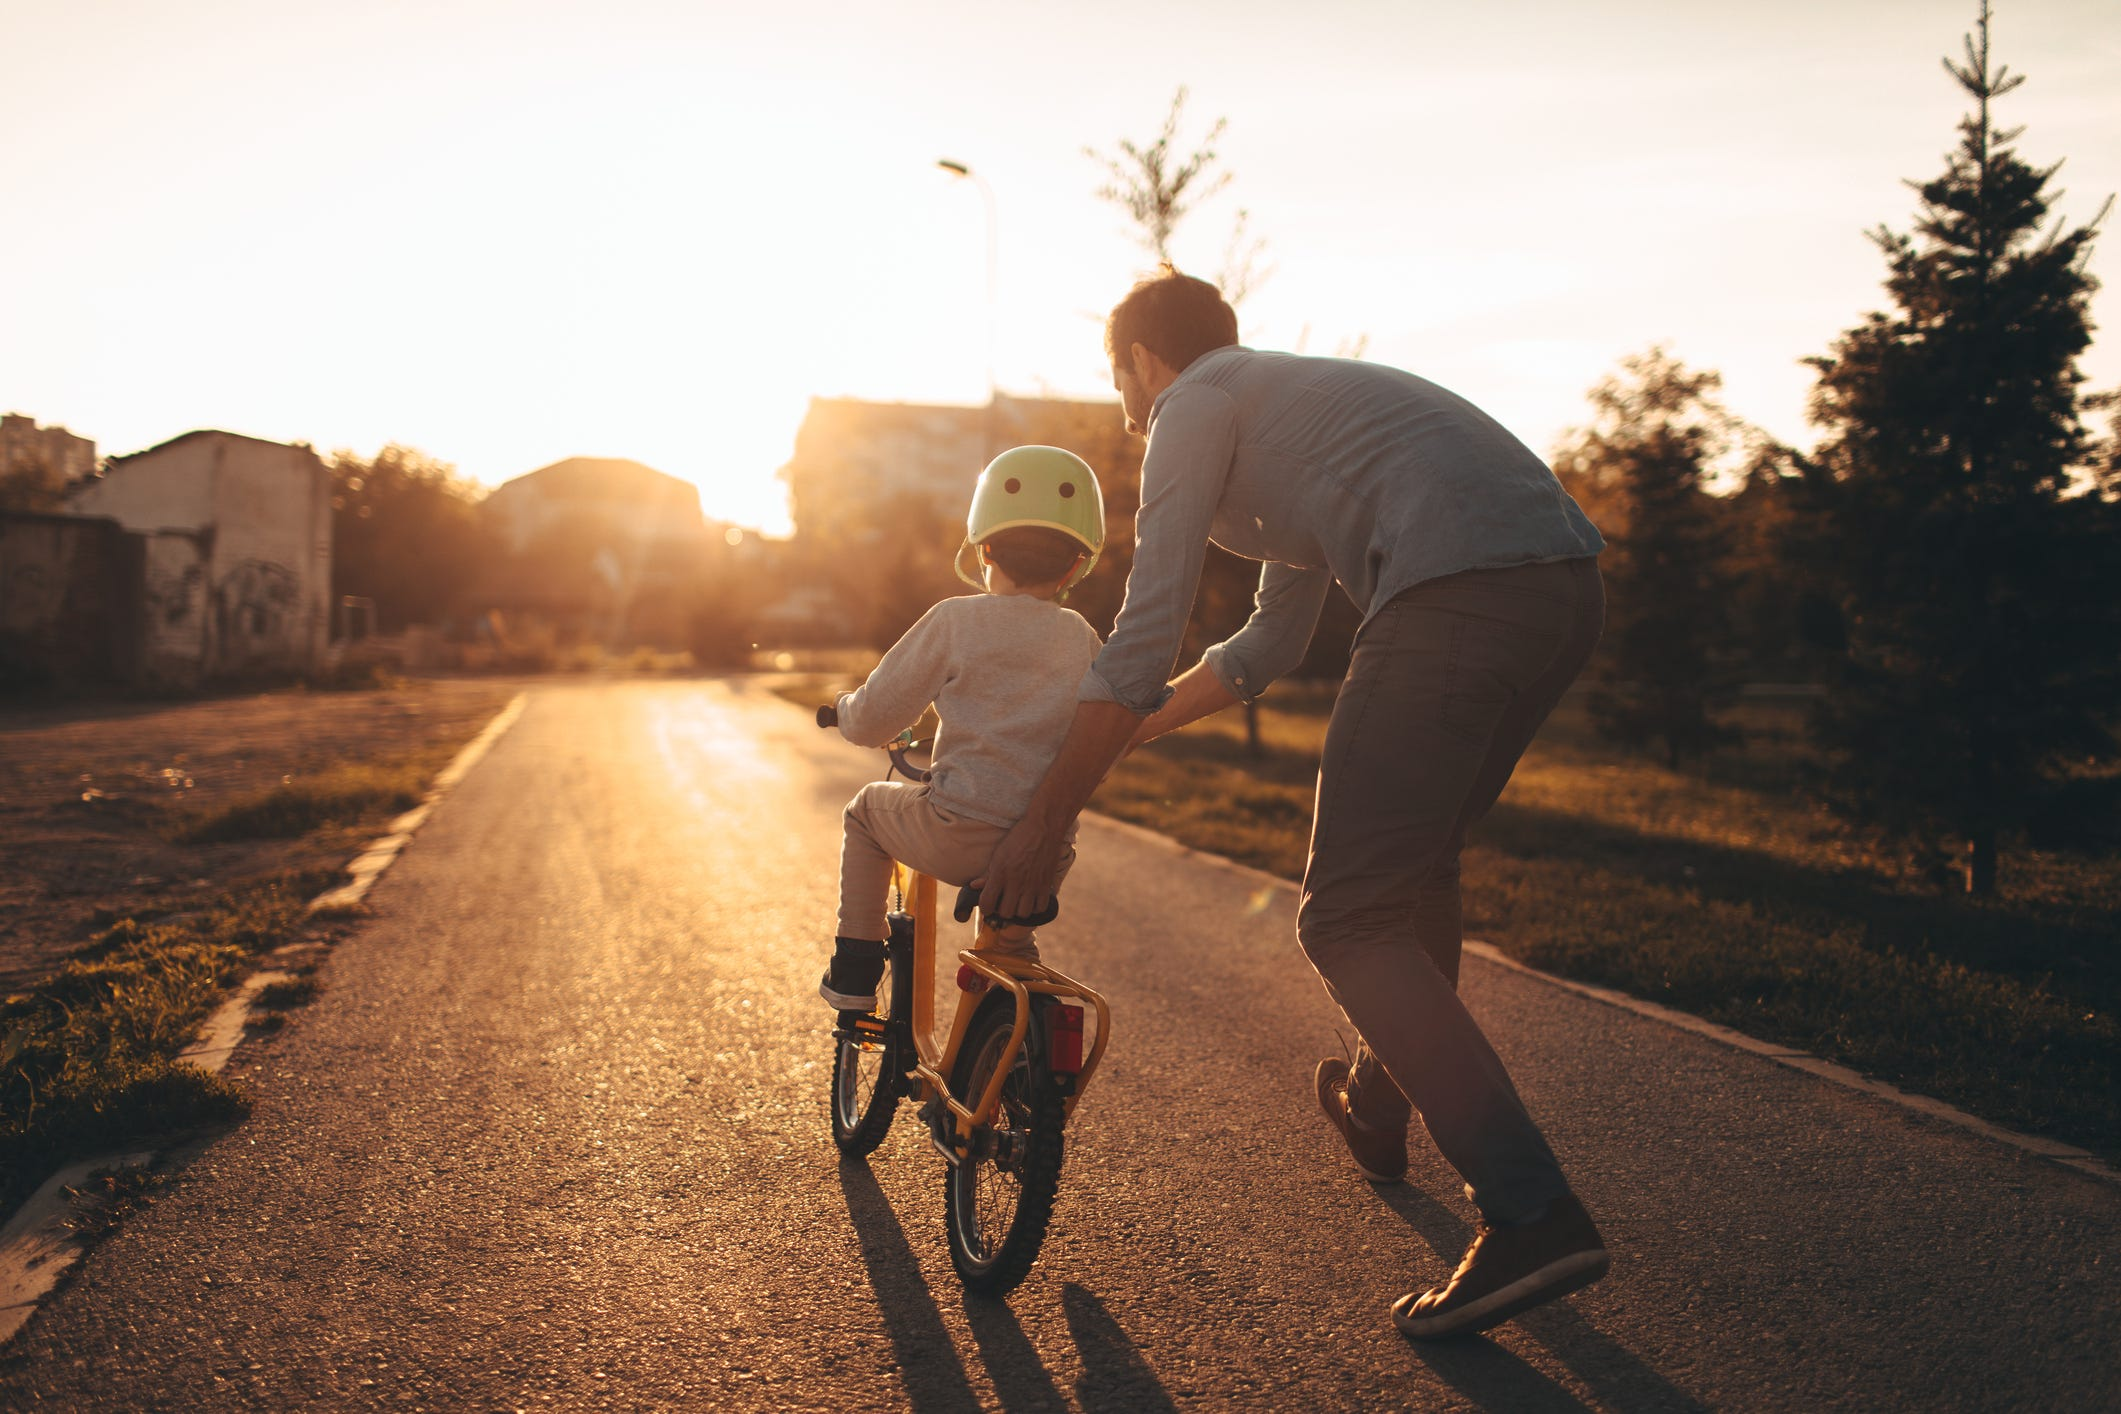 On Father's Day, dads don't need (or want) you to go through the motions | Arizona Central